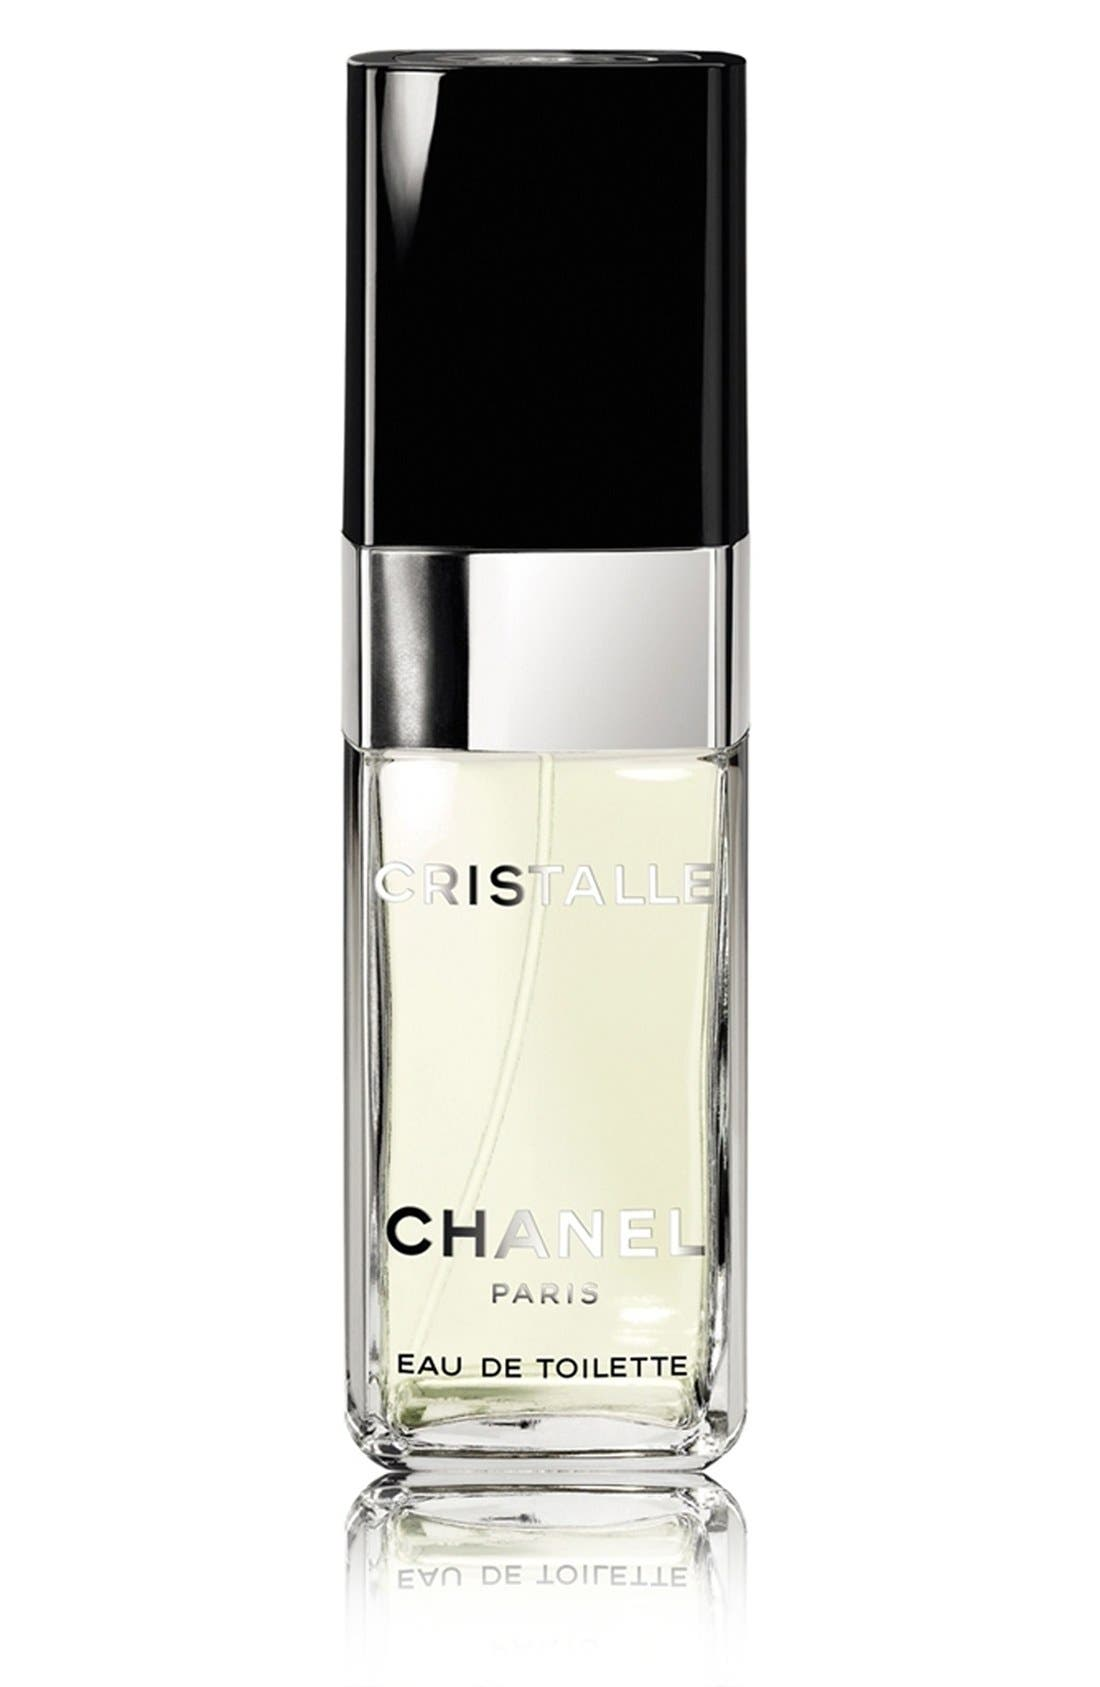 CRISTALLE<br />Eau de Toilette Spray,                             Main thumbnail 1, color,                             NO COLOR